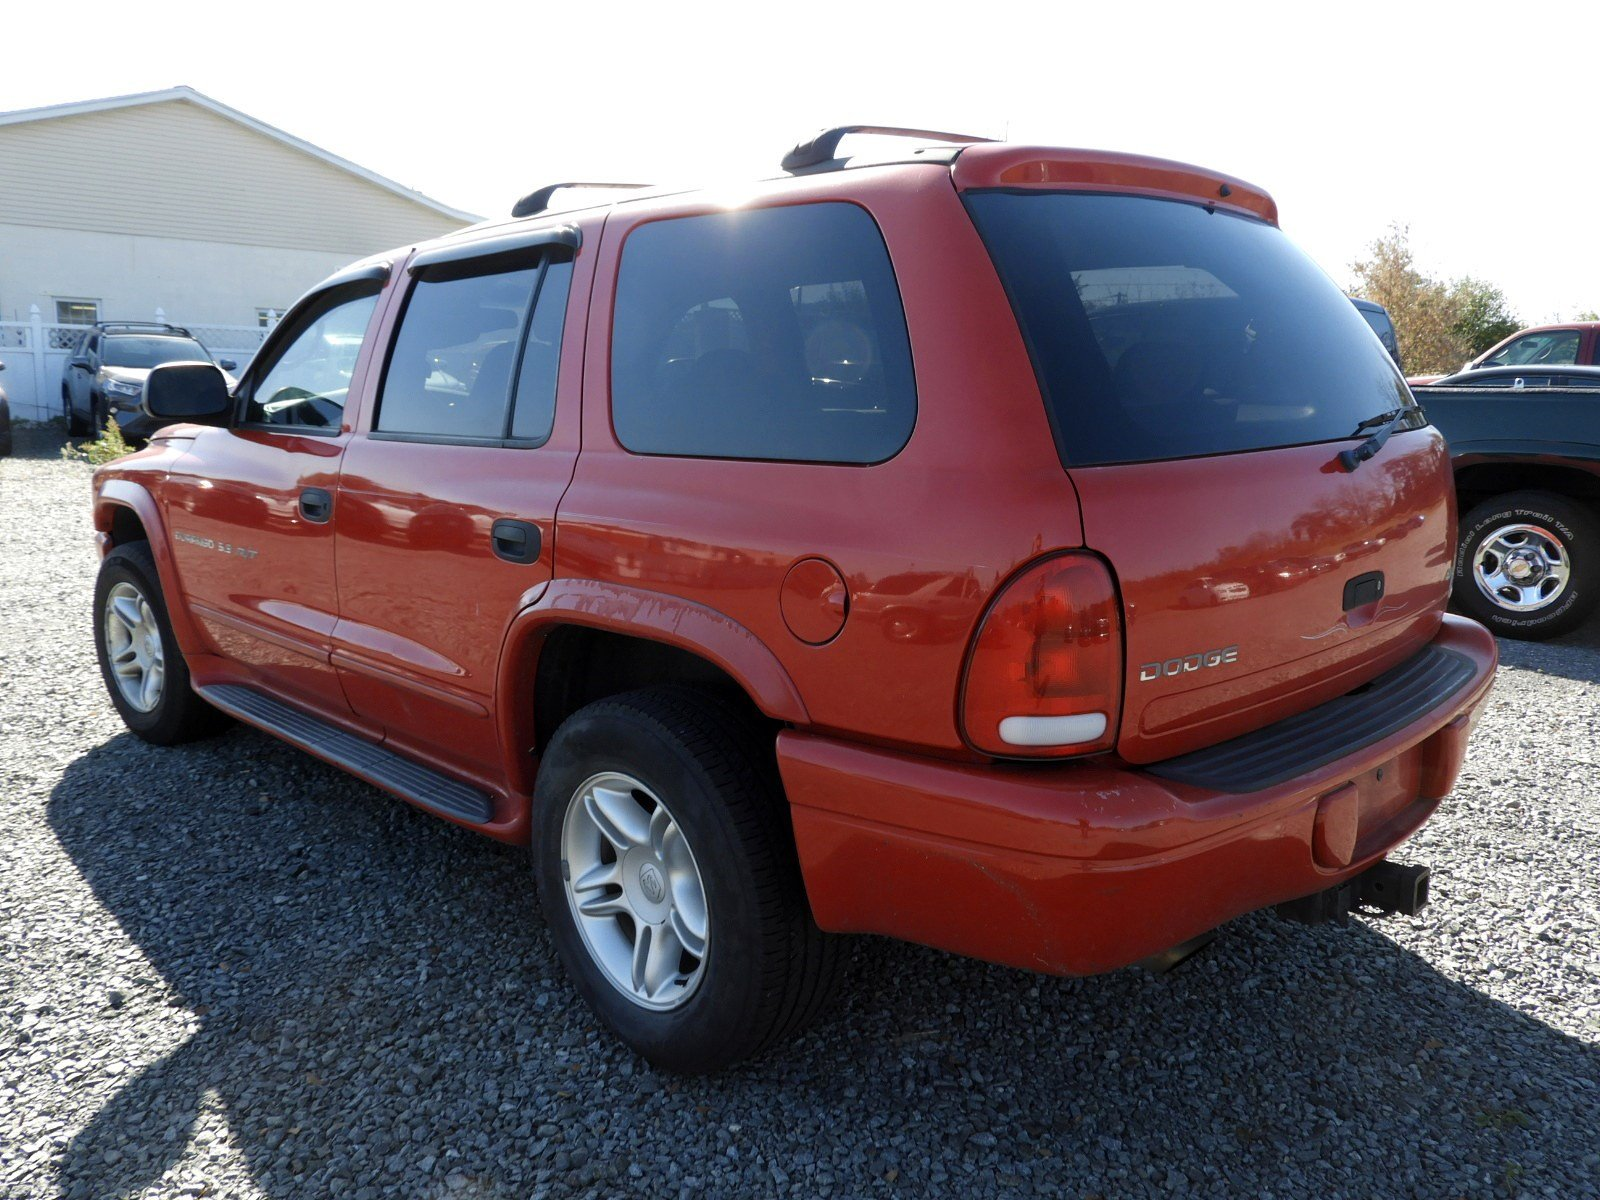 Pre-Owned 2001 Dodge Durango R/T